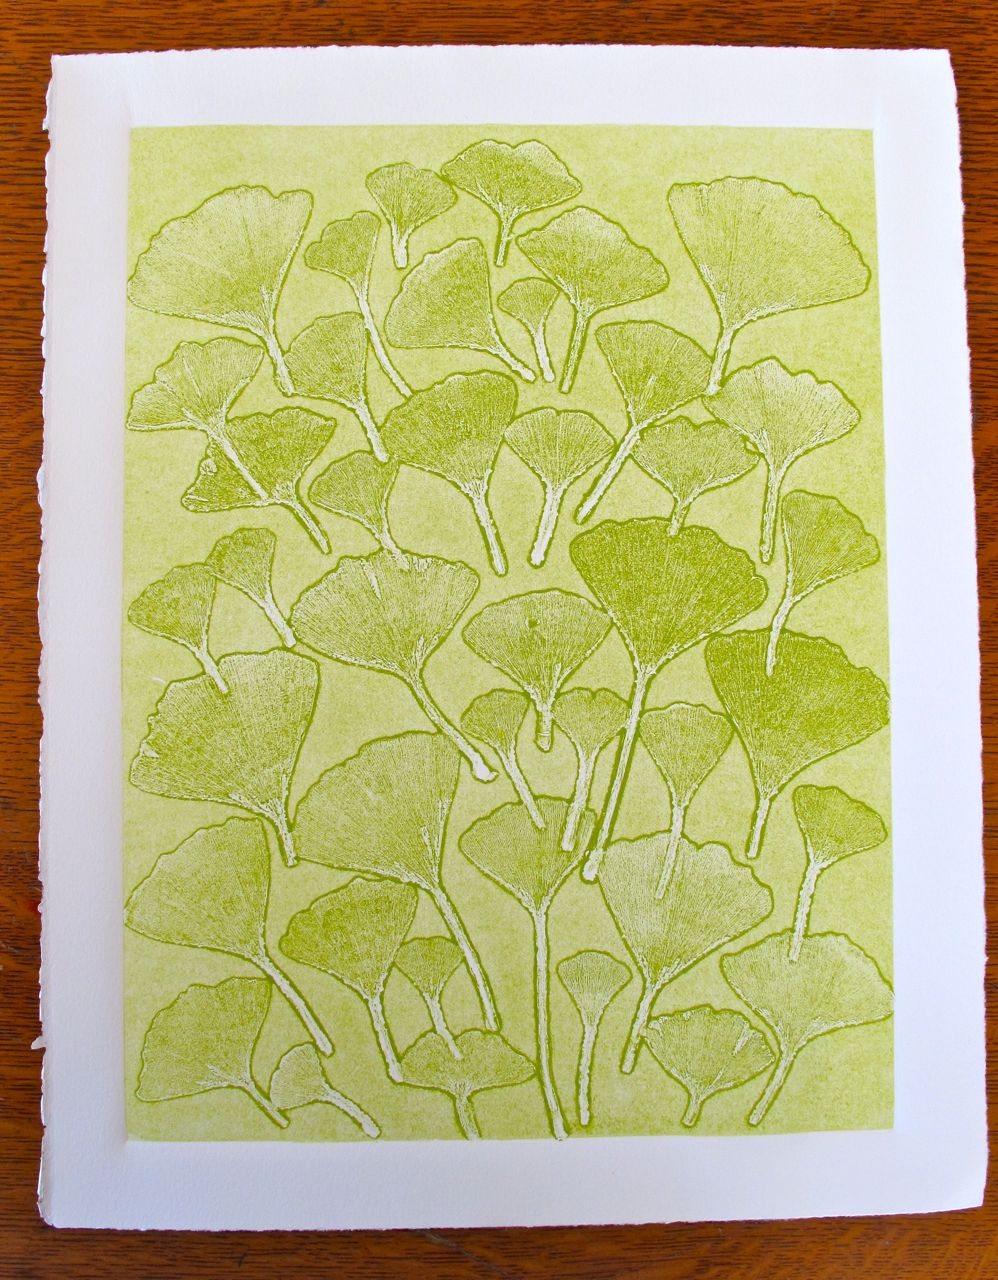 nature print making tickets expo adventure festival portland 3 fish studios andportland based pine fort press will help you discover the random beauty of nature while making a nice edition of prints to take home